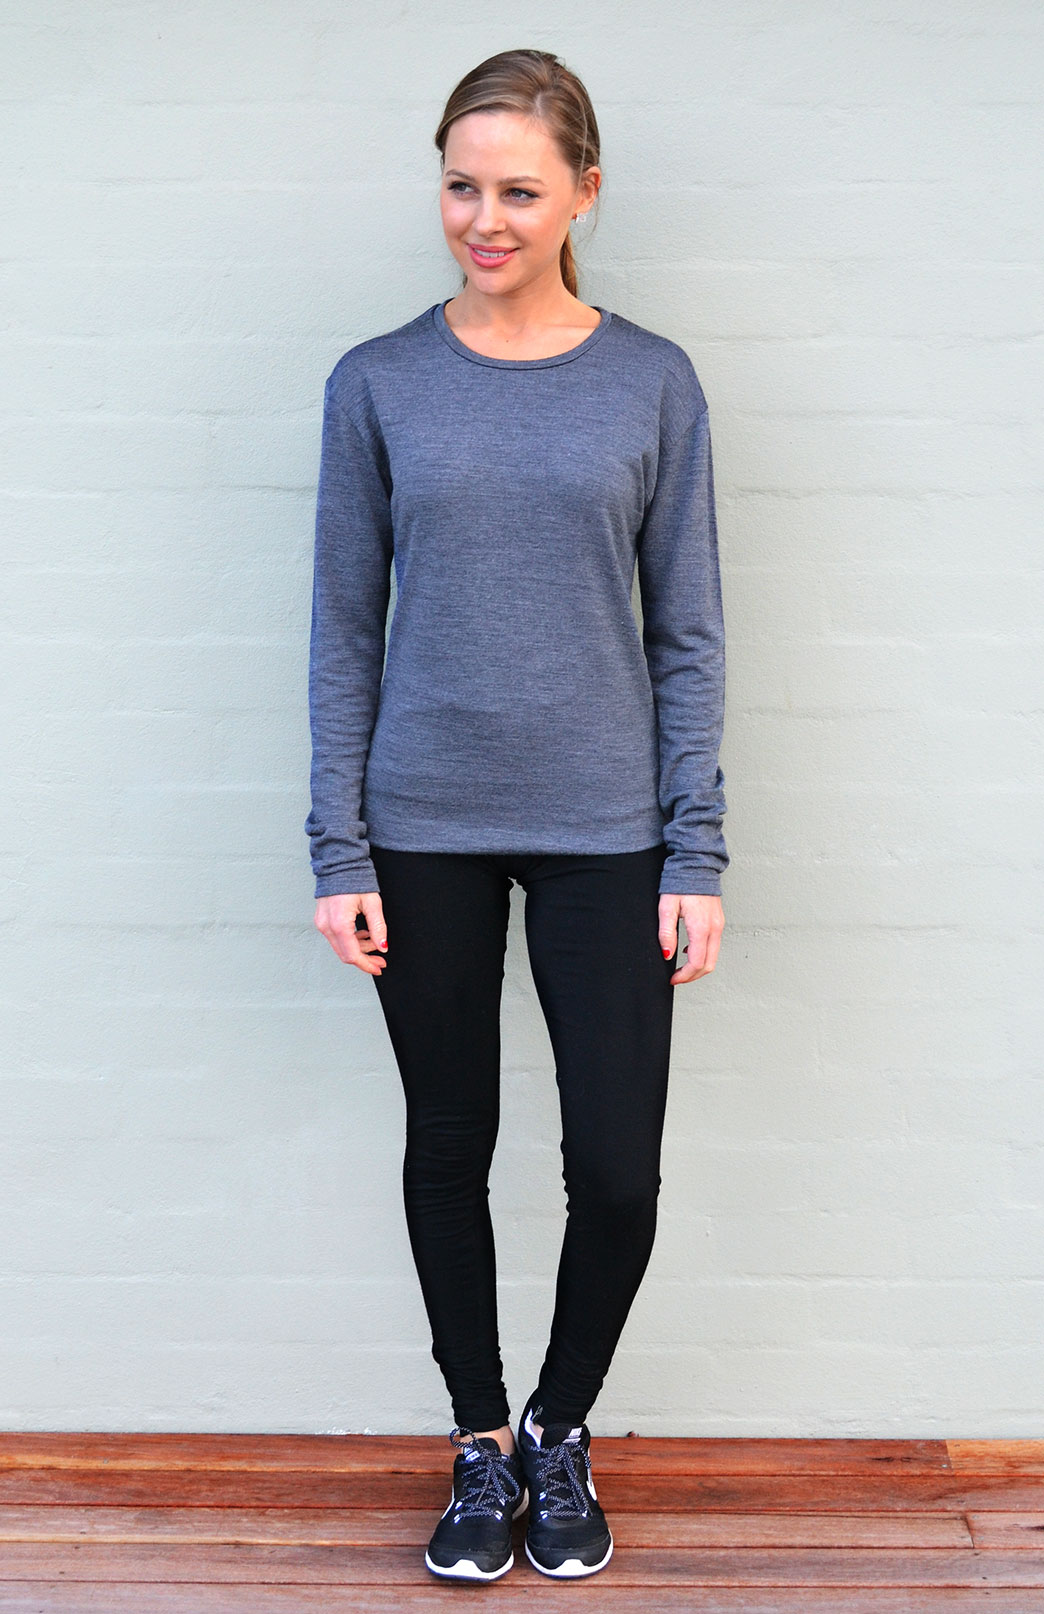 Women's Crew Neck Top - Long Sleeve 240g - Smitten Merino Tasmania Australia